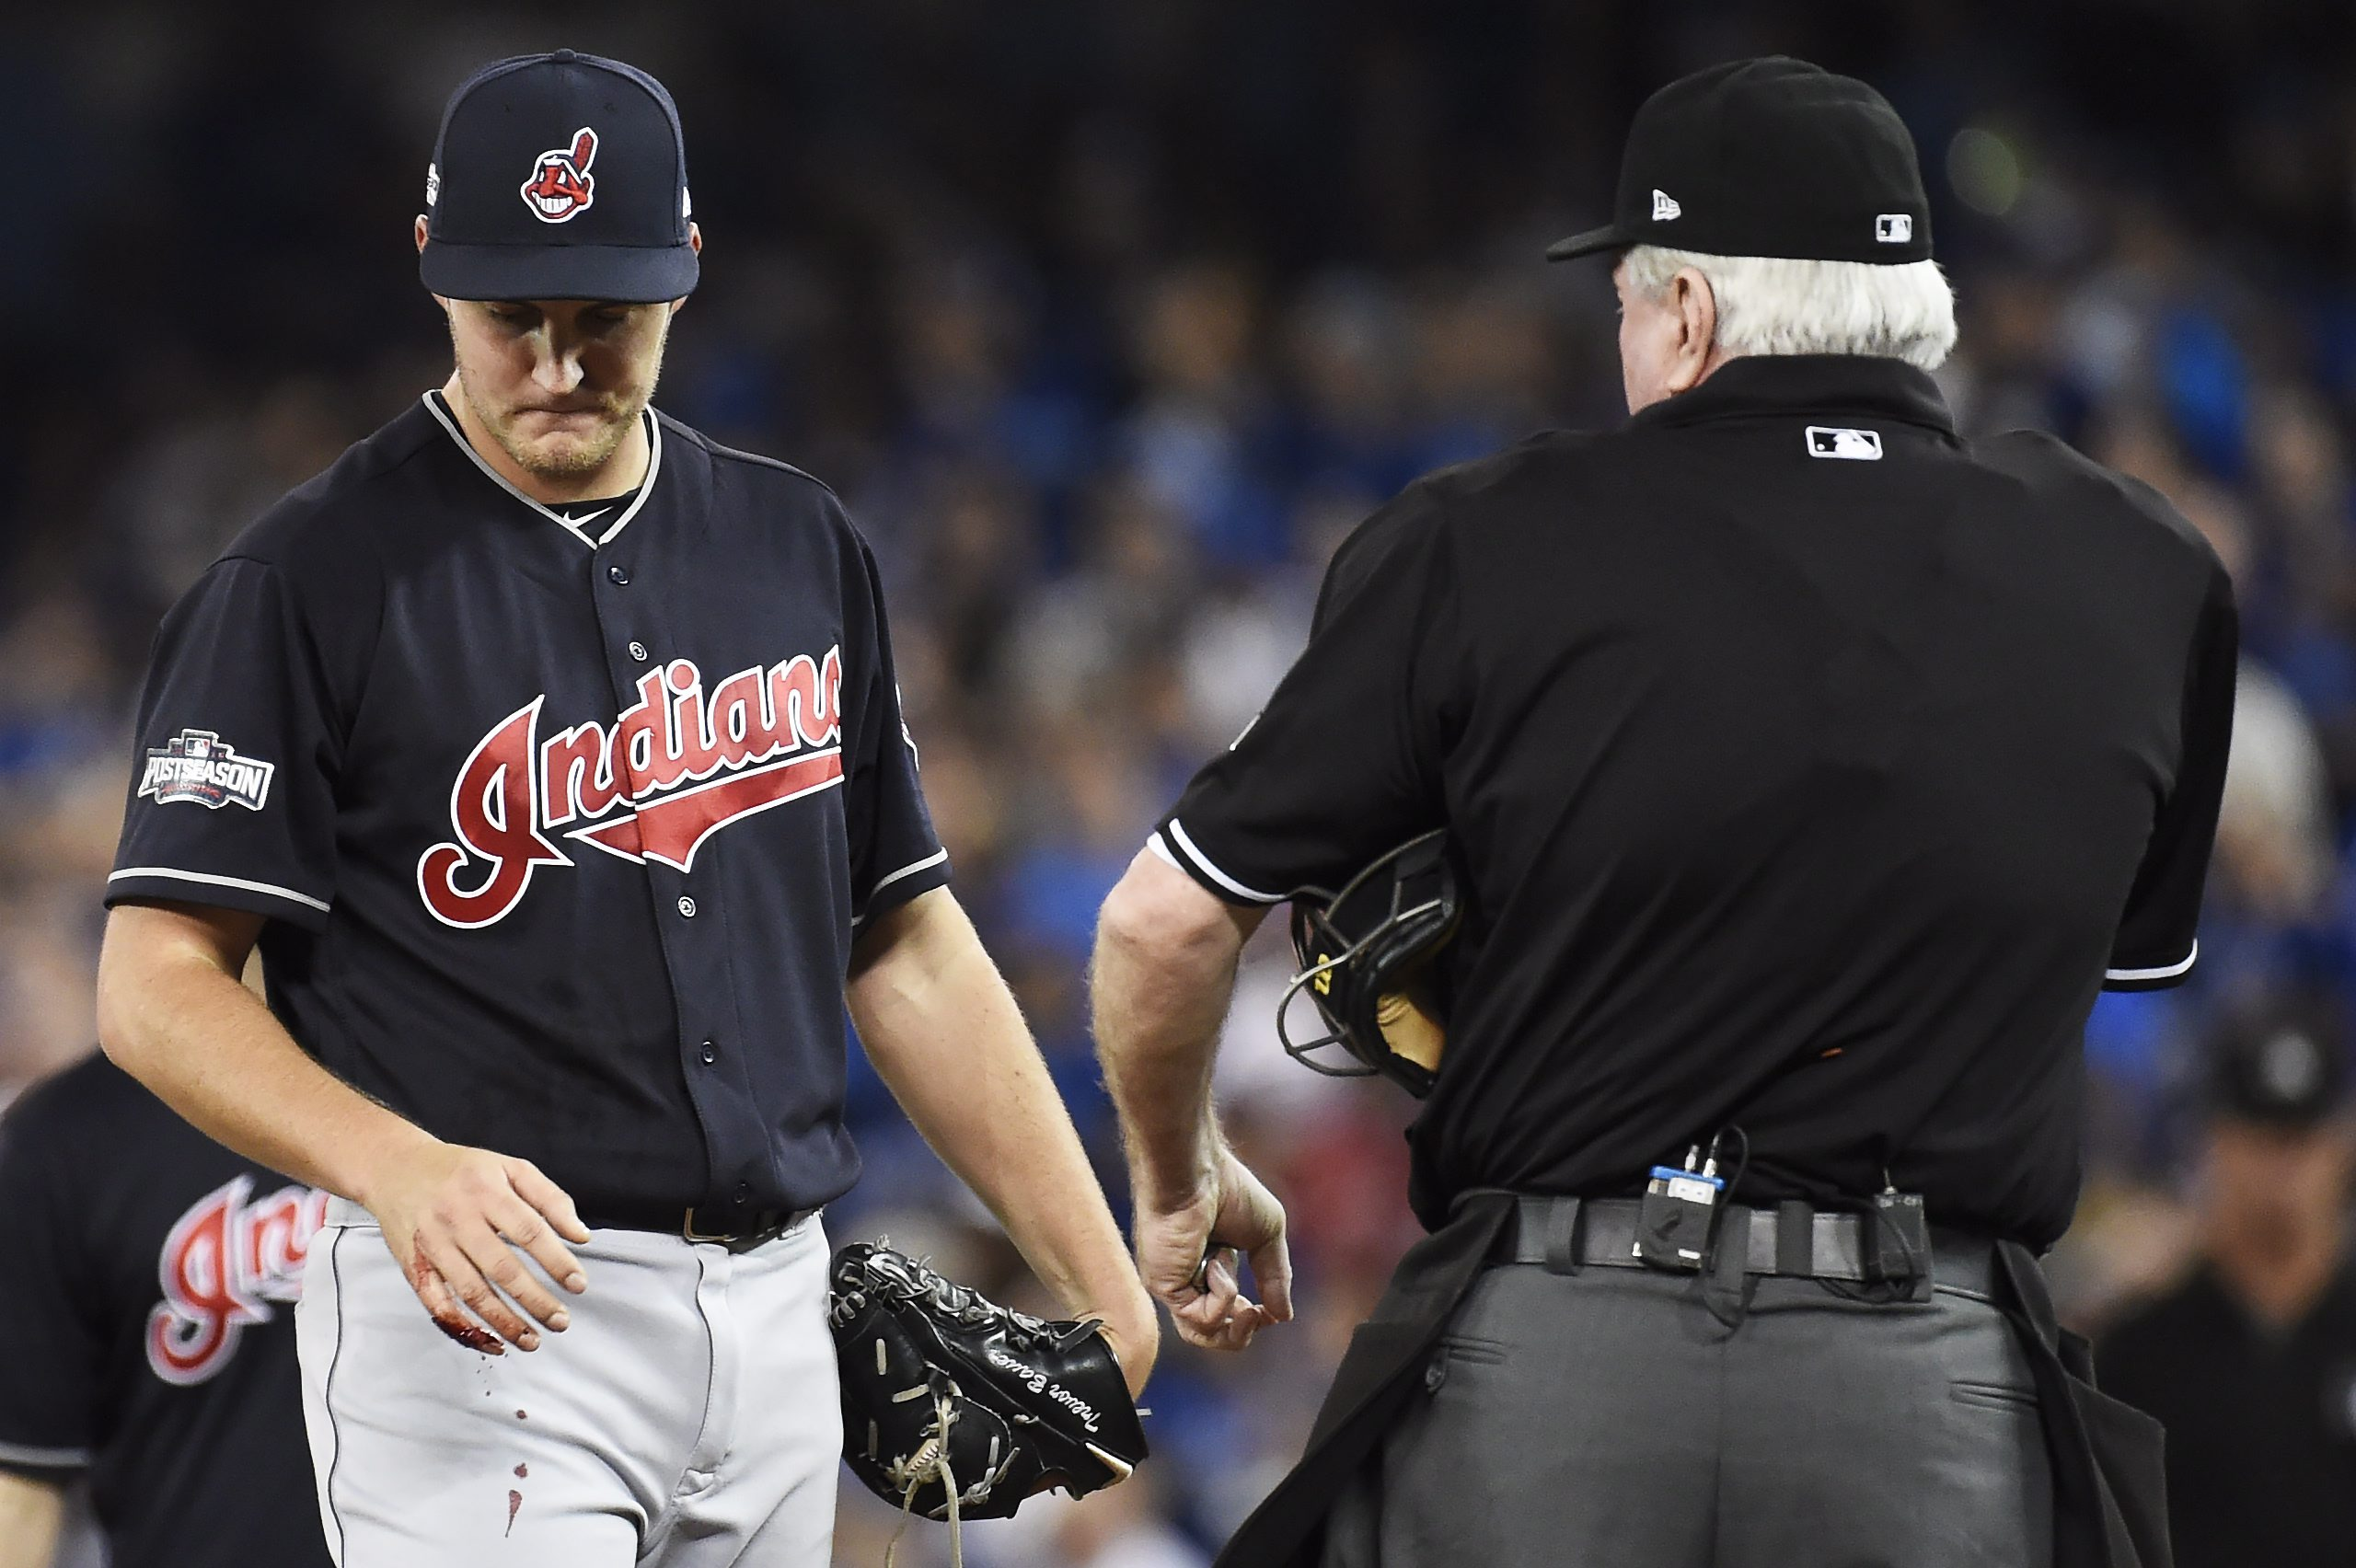 Cleveland Indians starting pitcher Trevor Bauer looks at his bleeding finger during first inning of game three American League Championship Series baseball action against the Toronto Blue Jays in Toronto on Monday, Oct. 17, 2016. (Nathan Denette/The Canad